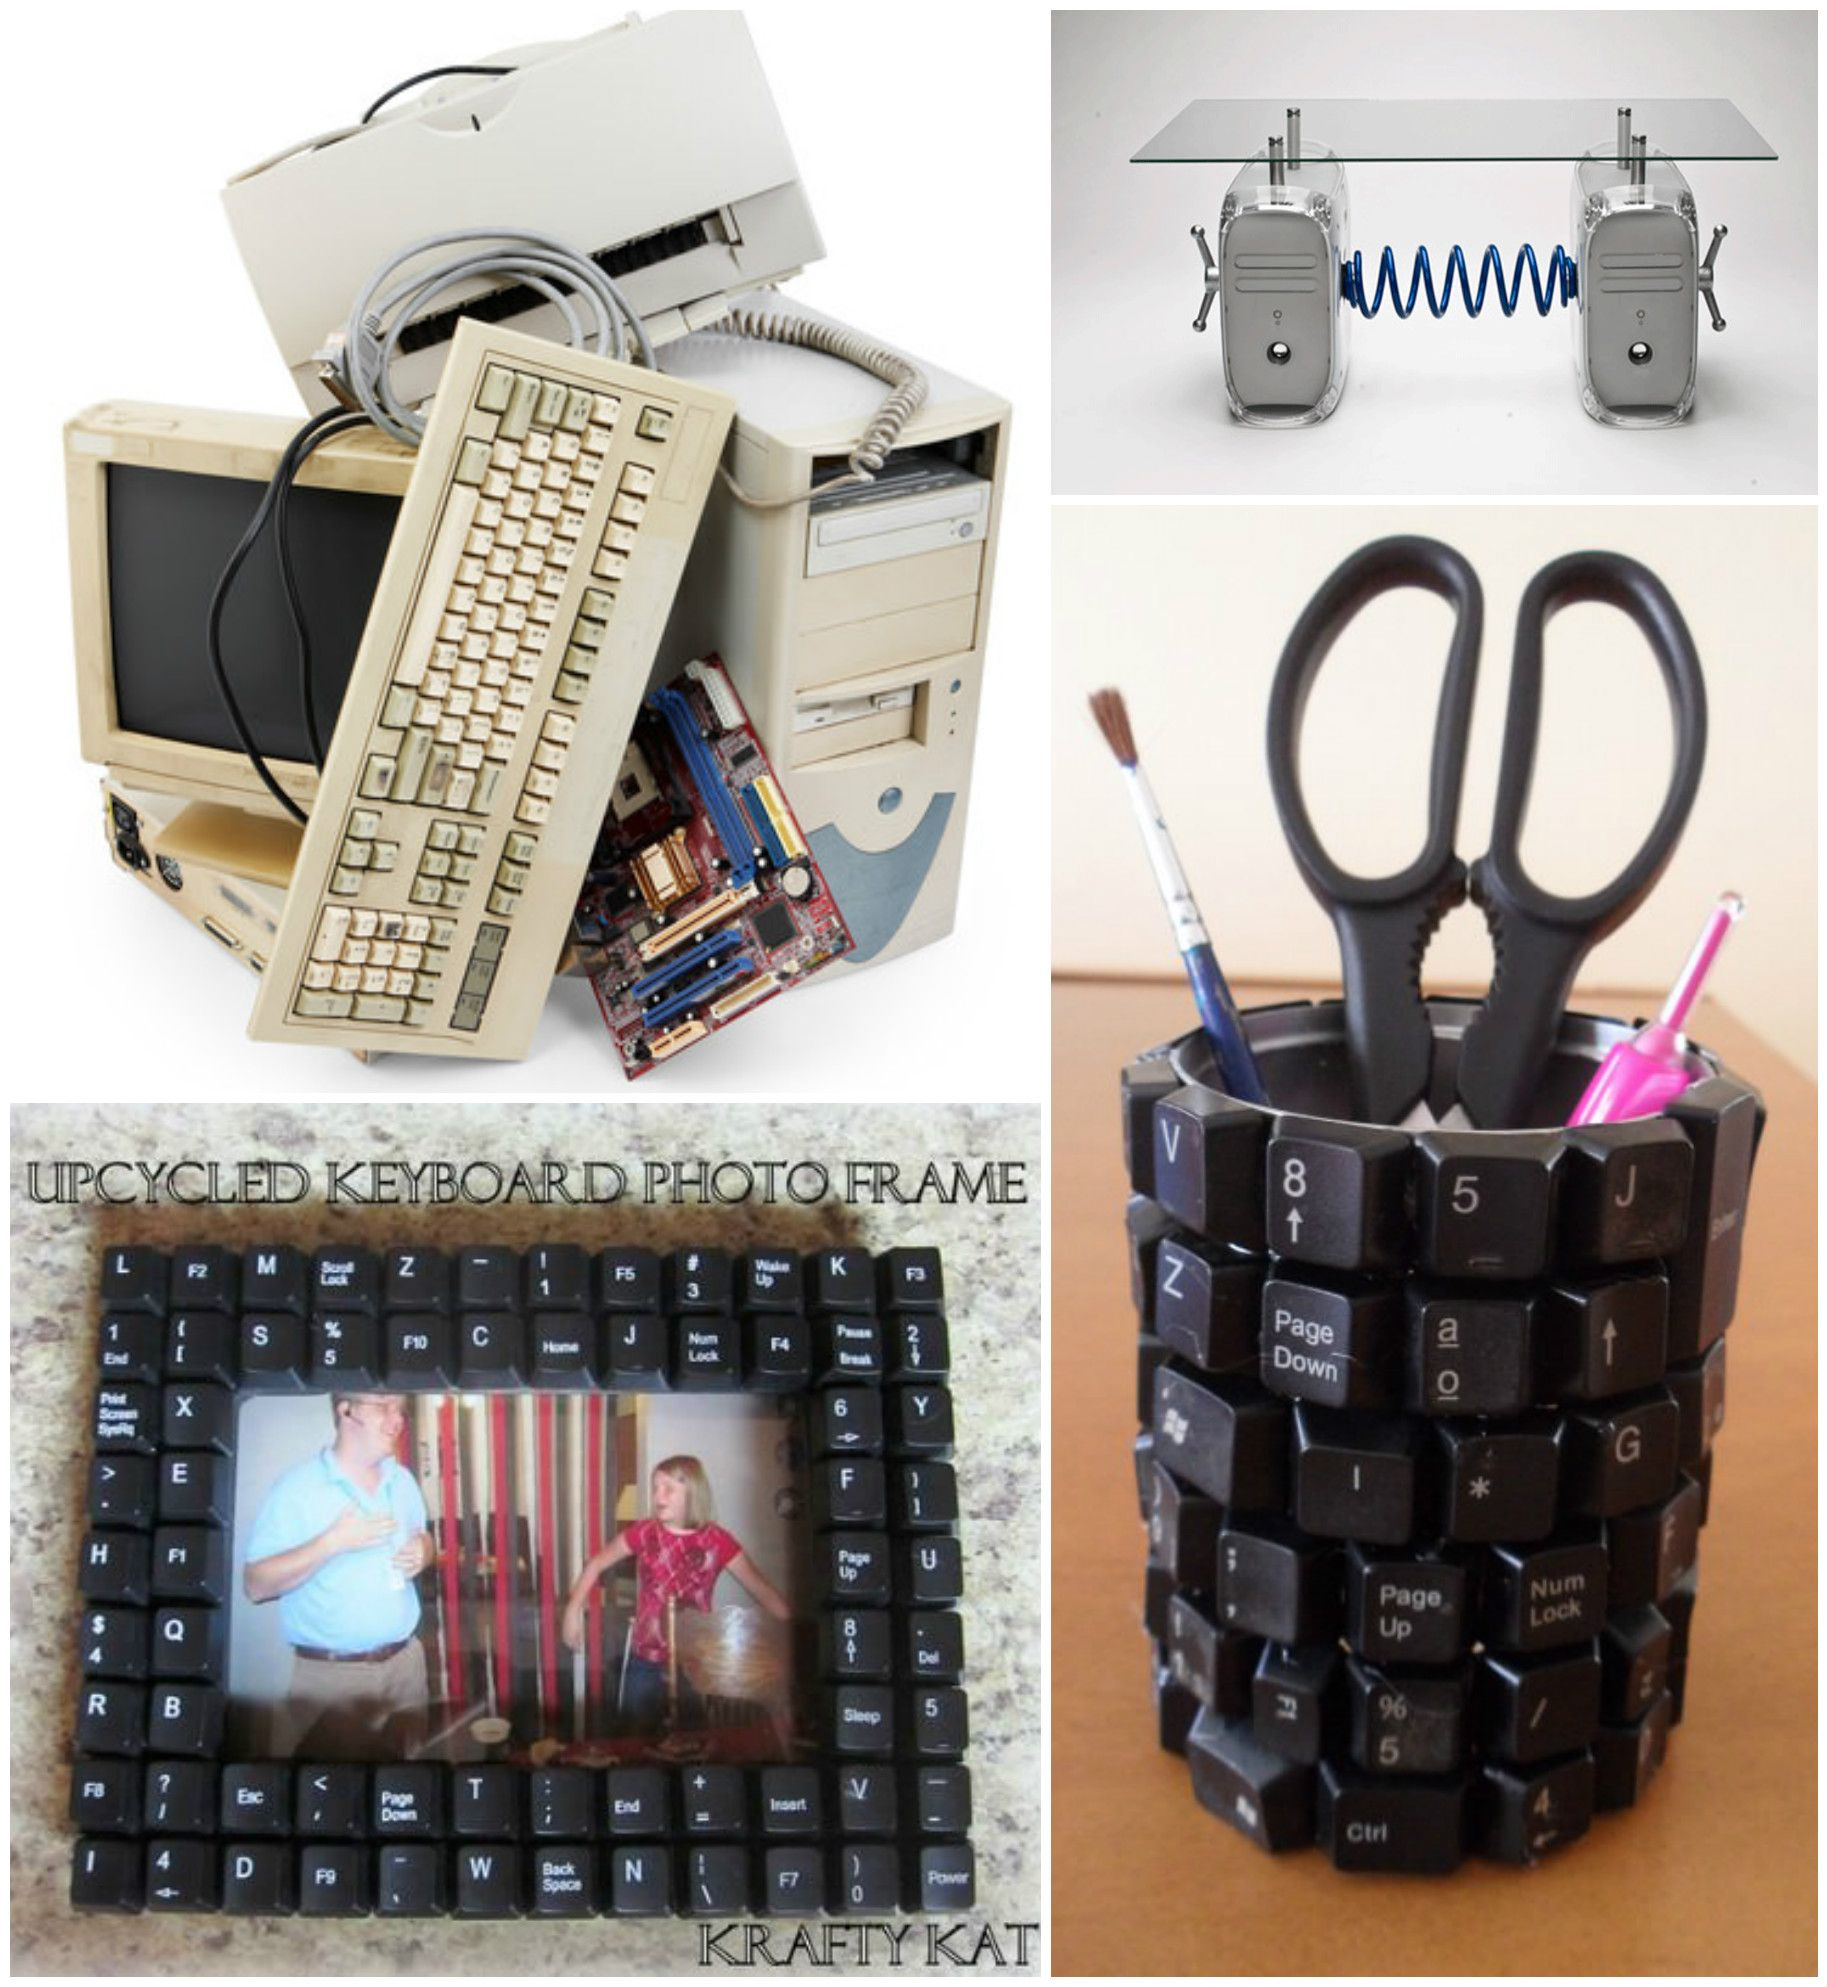 Easy Ideas To Recycled Reuse Old Computer Parts Cool Electronic Pcb Sculptures Artist Upcycles Circuit Boards Into Art Diy Glass Keyboard Office Table